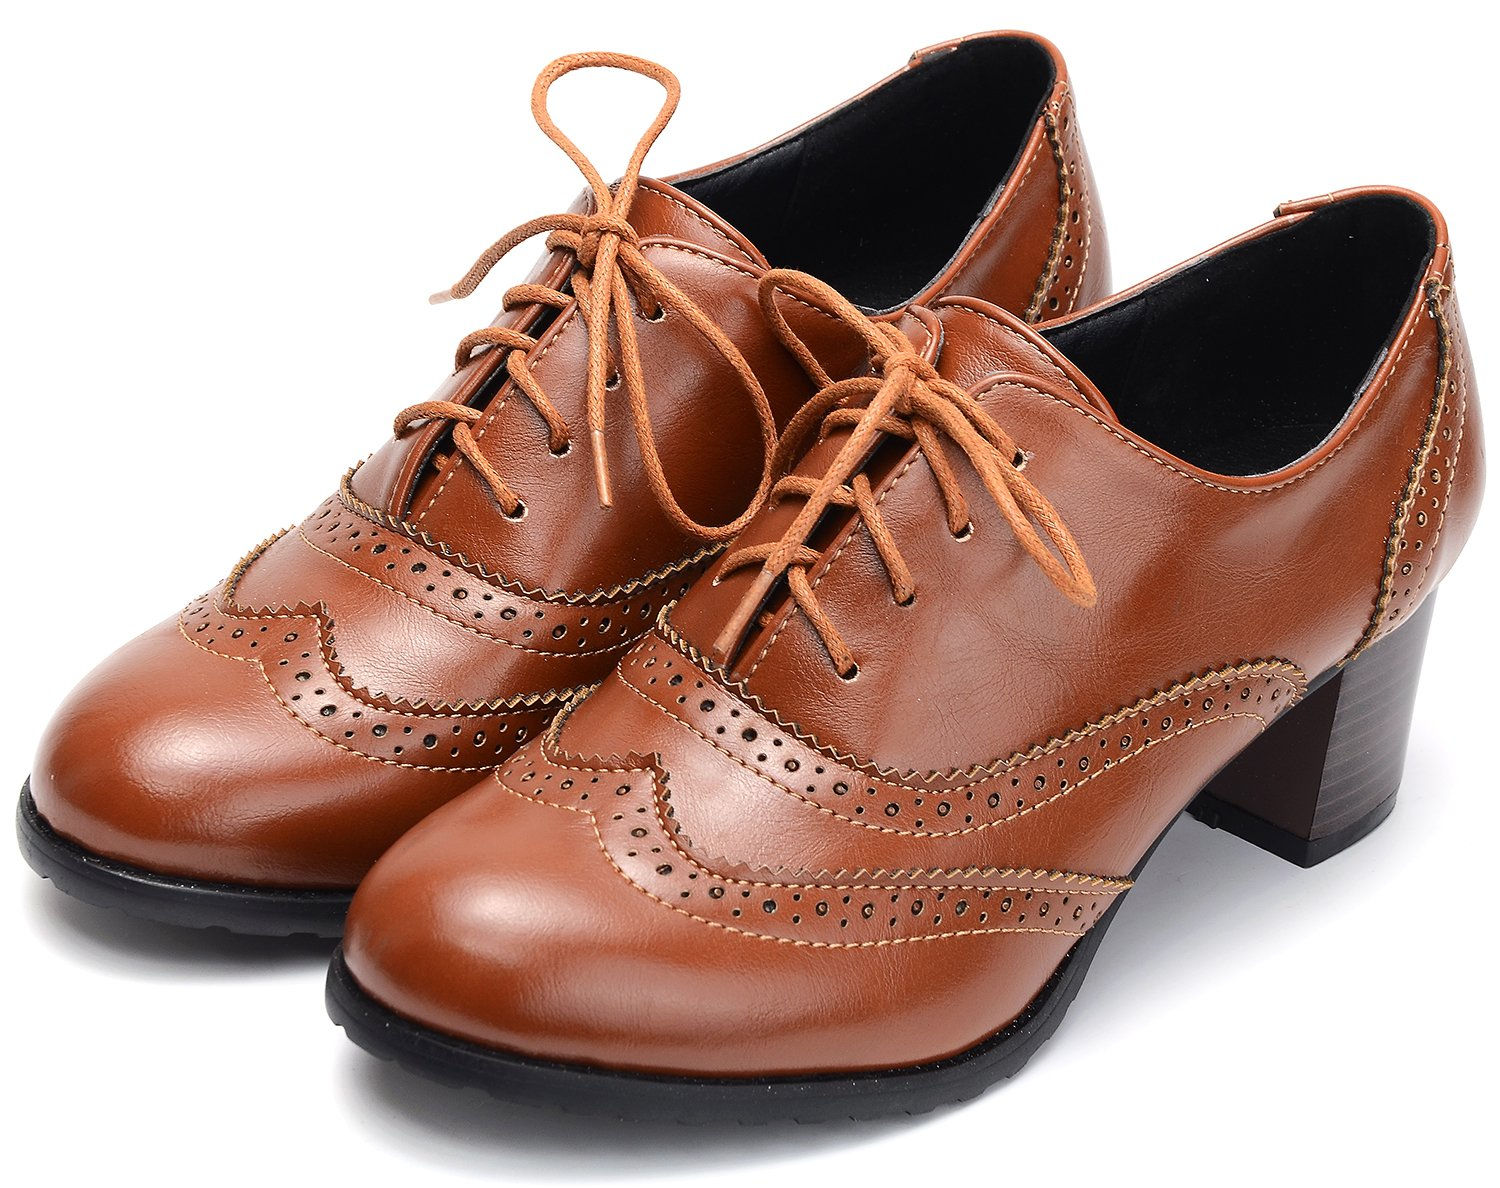 Odema Womens pu Leather Brogue Oxfords Wingtip Lace up Dress Shoes High Heels Pumps